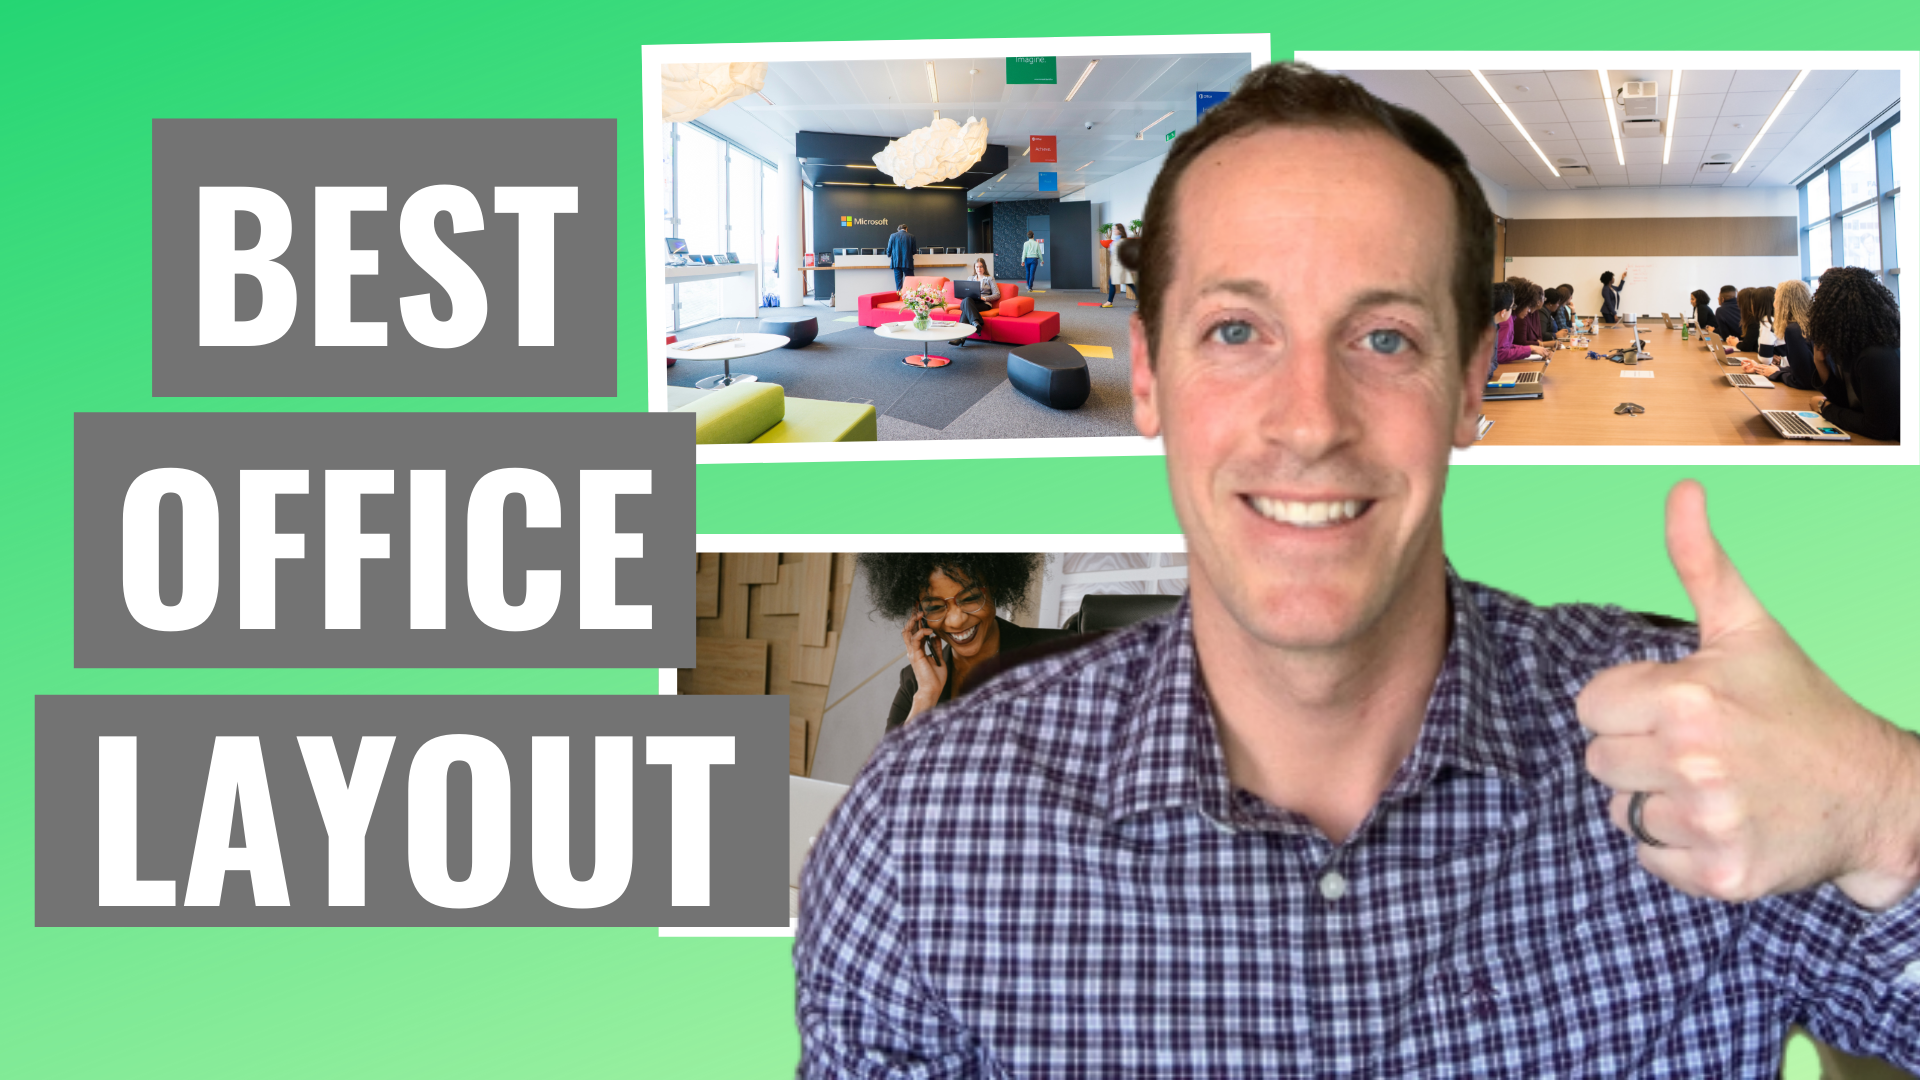 What Is The Best Office Space Layout? Tips To Help Business Owners Find Their Perfect Office Space